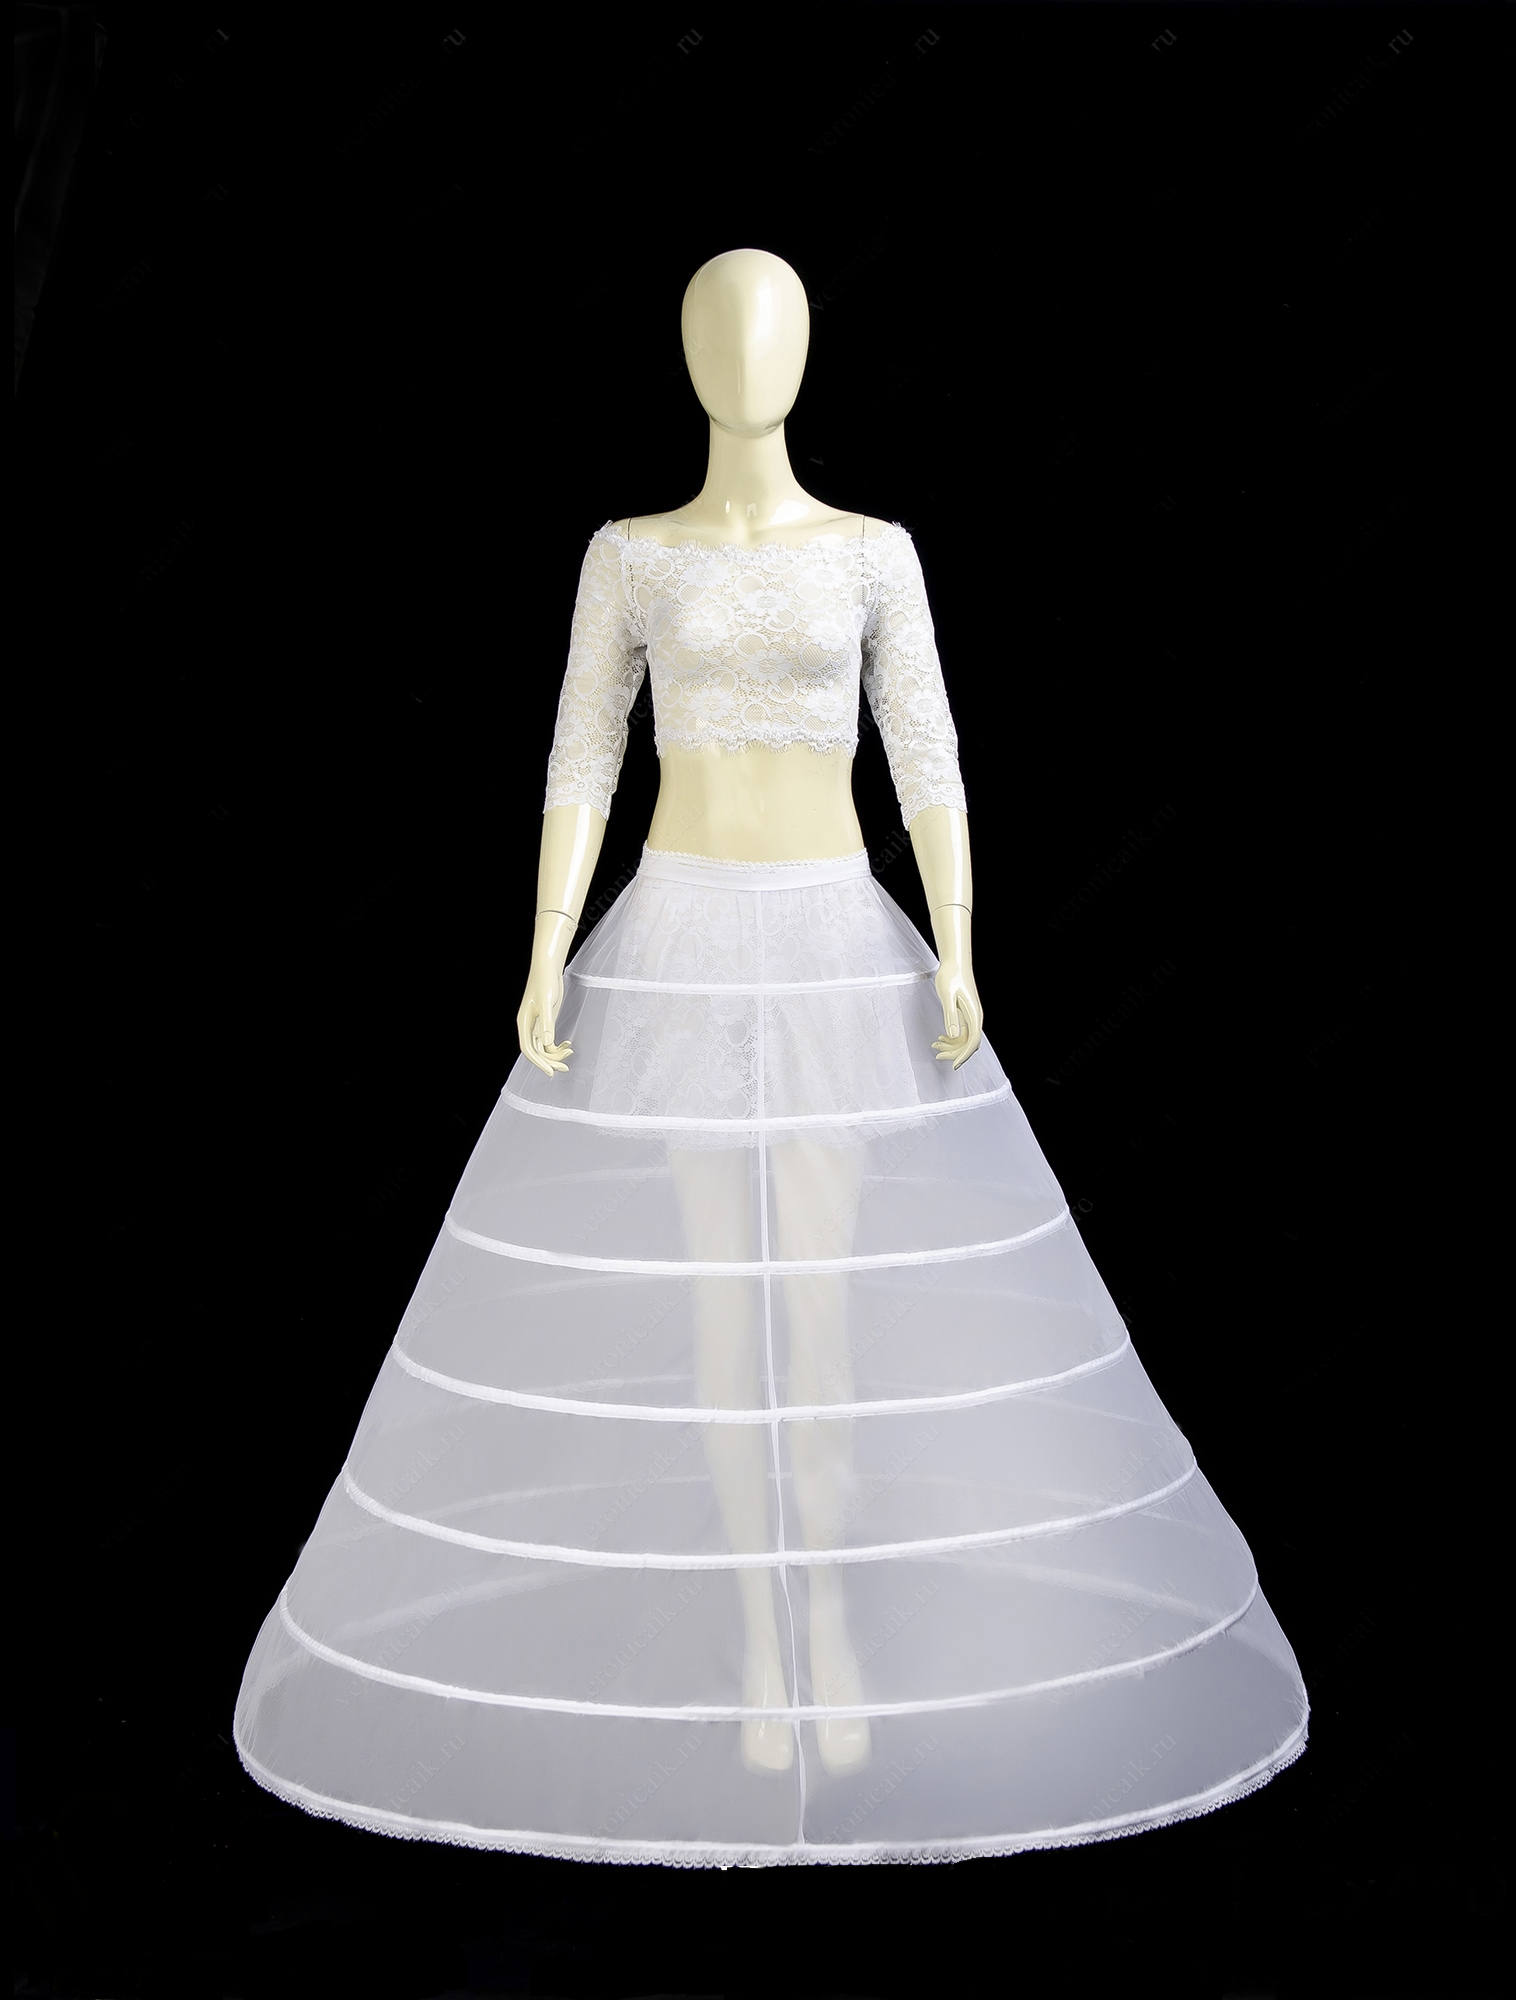 Where to buy a petticoat with rings for a wedding dress